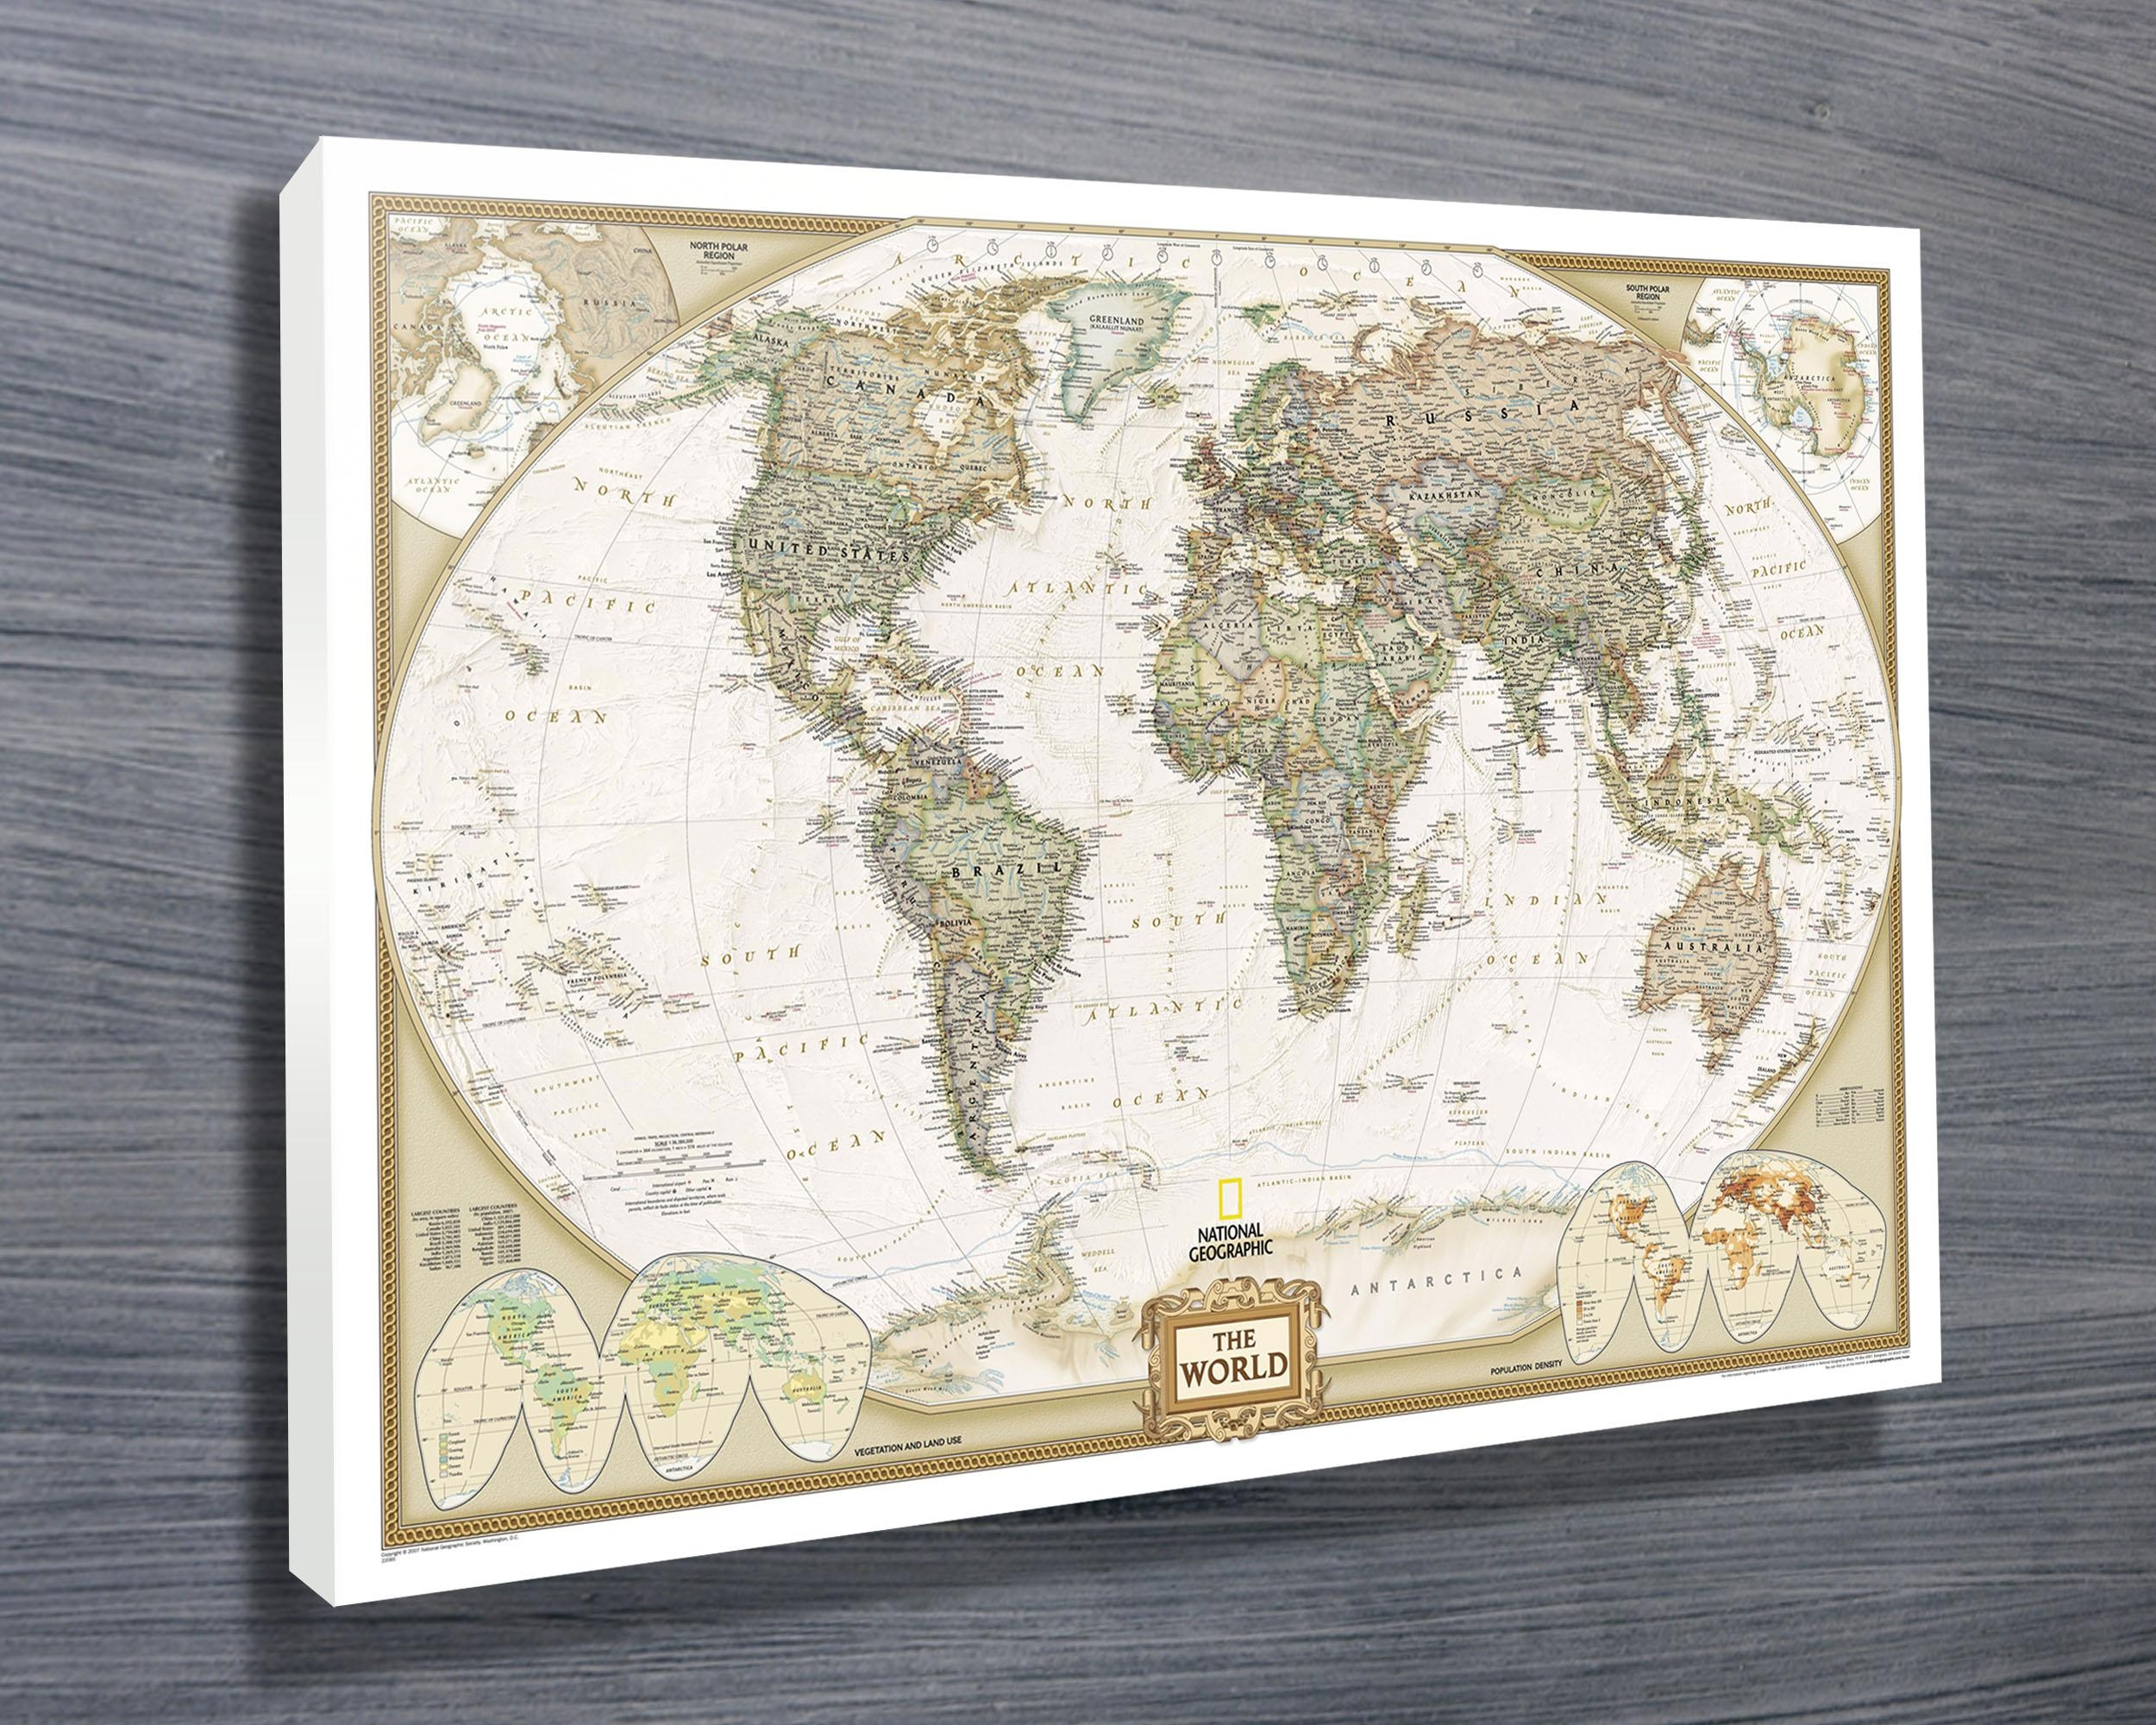 National Geographic Map – Canvas Prints Australia With Regard To Framed World Map Wall Art (View 3 of 20)